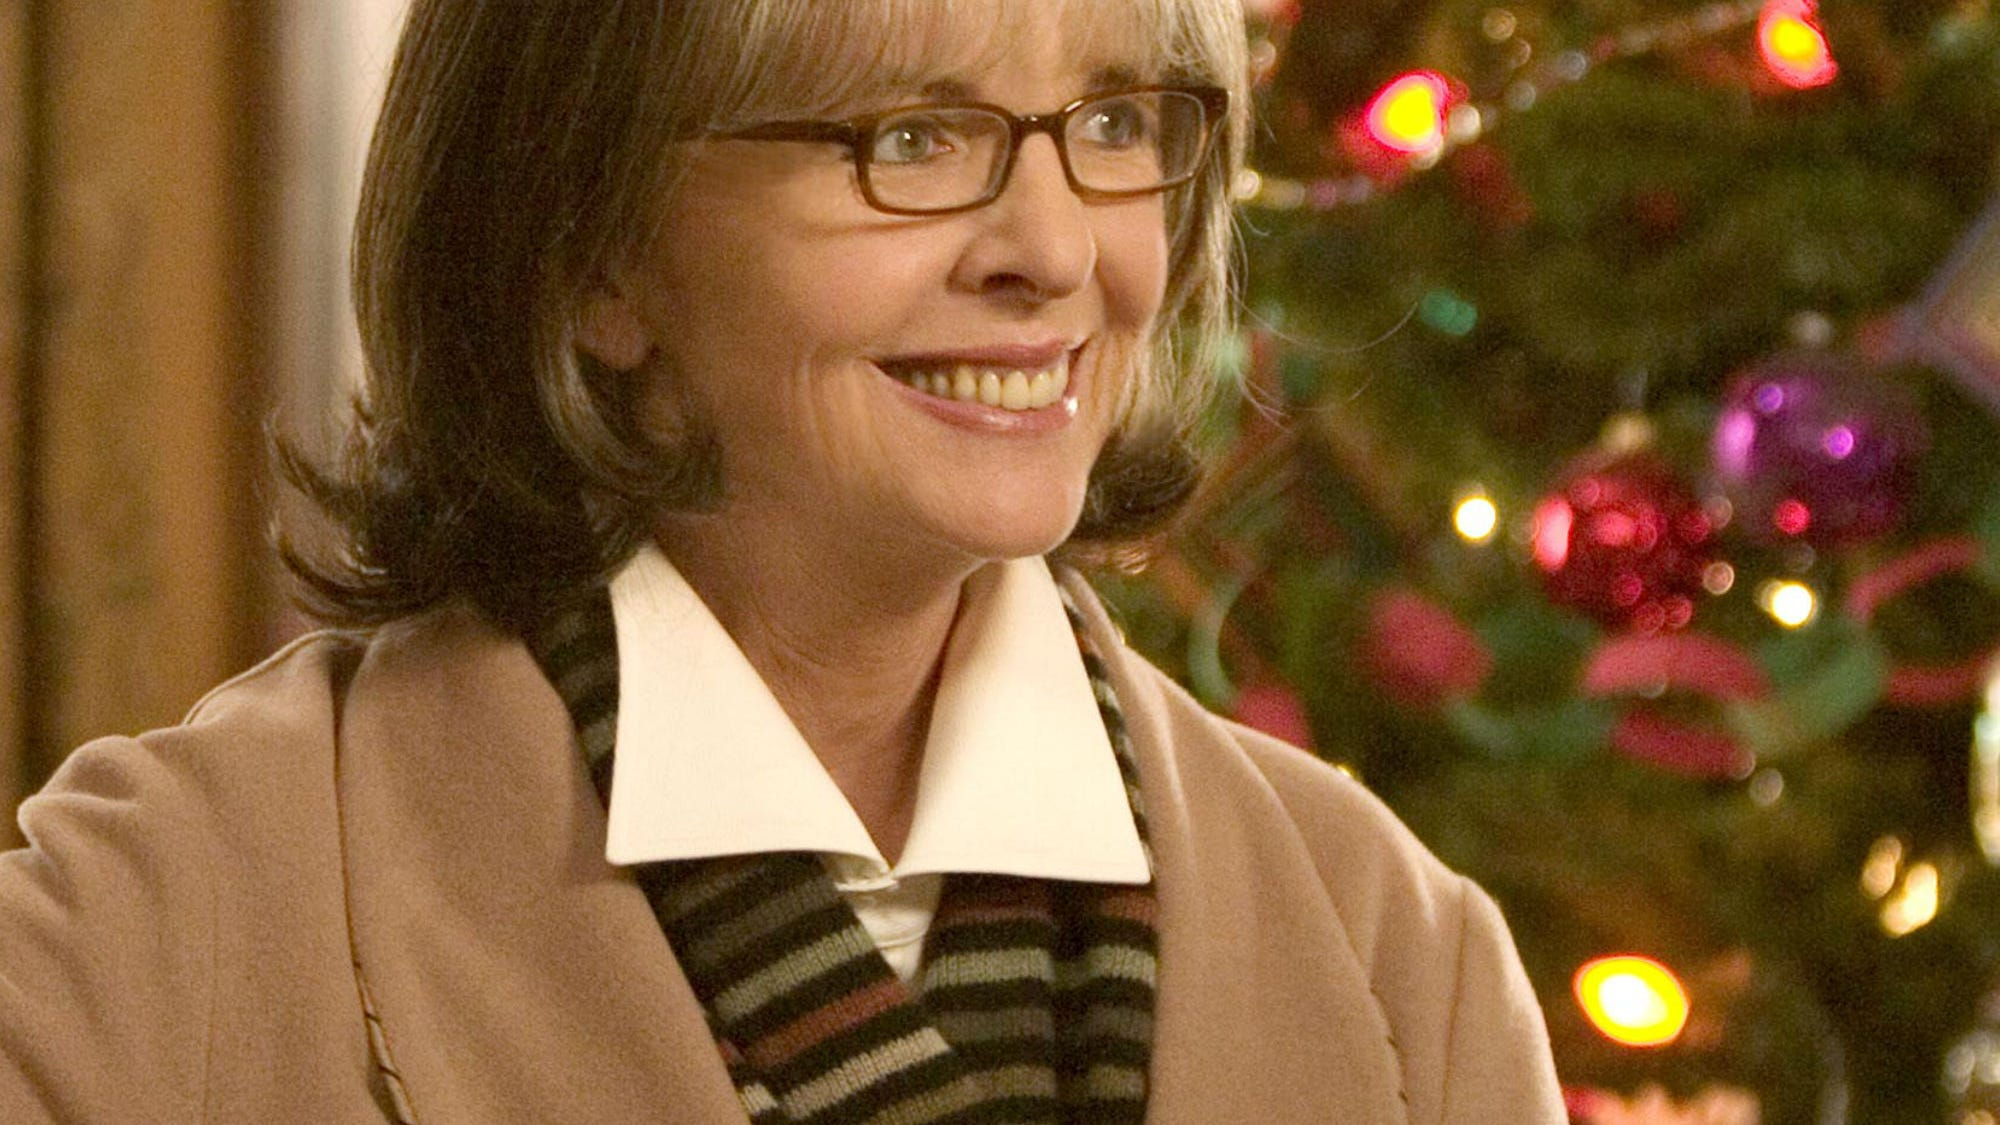 Christmas With The Kranks Botox.Why The Home For The Holidays Movie Needs To Die